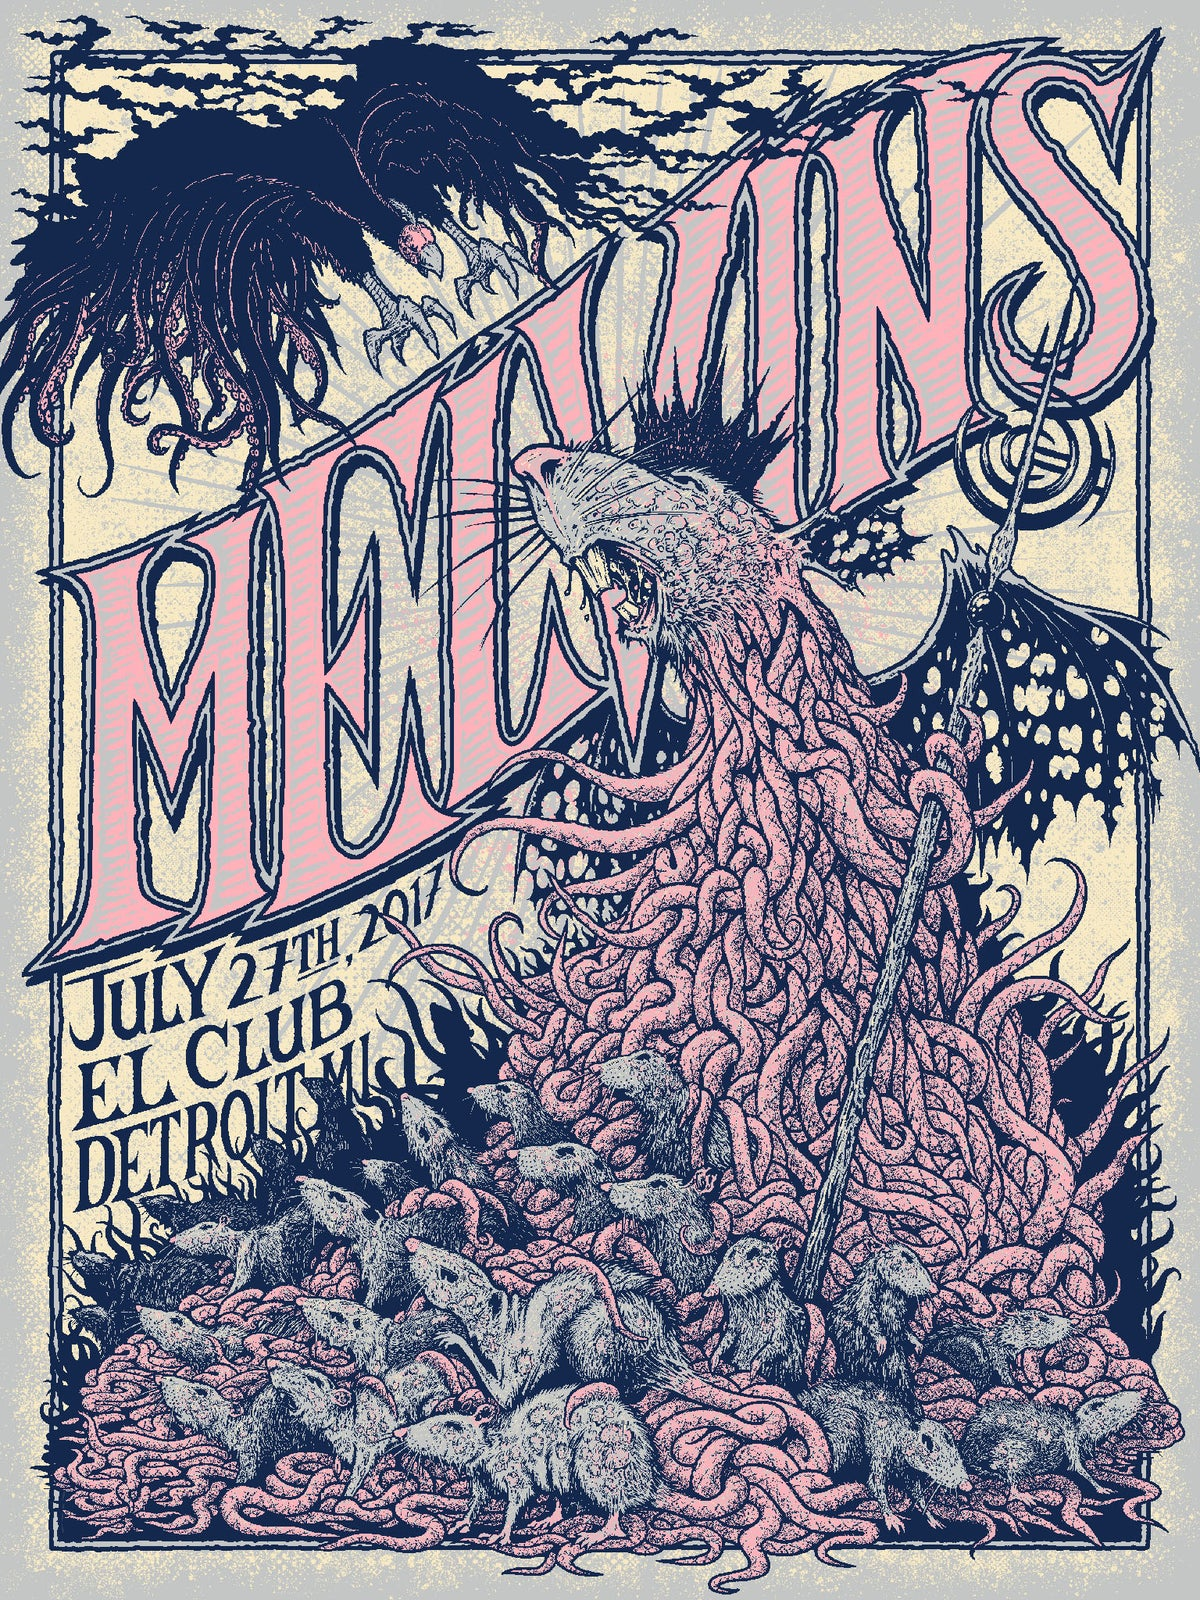 Image of Melvins, El Club, Detroit, MI 7/27/17